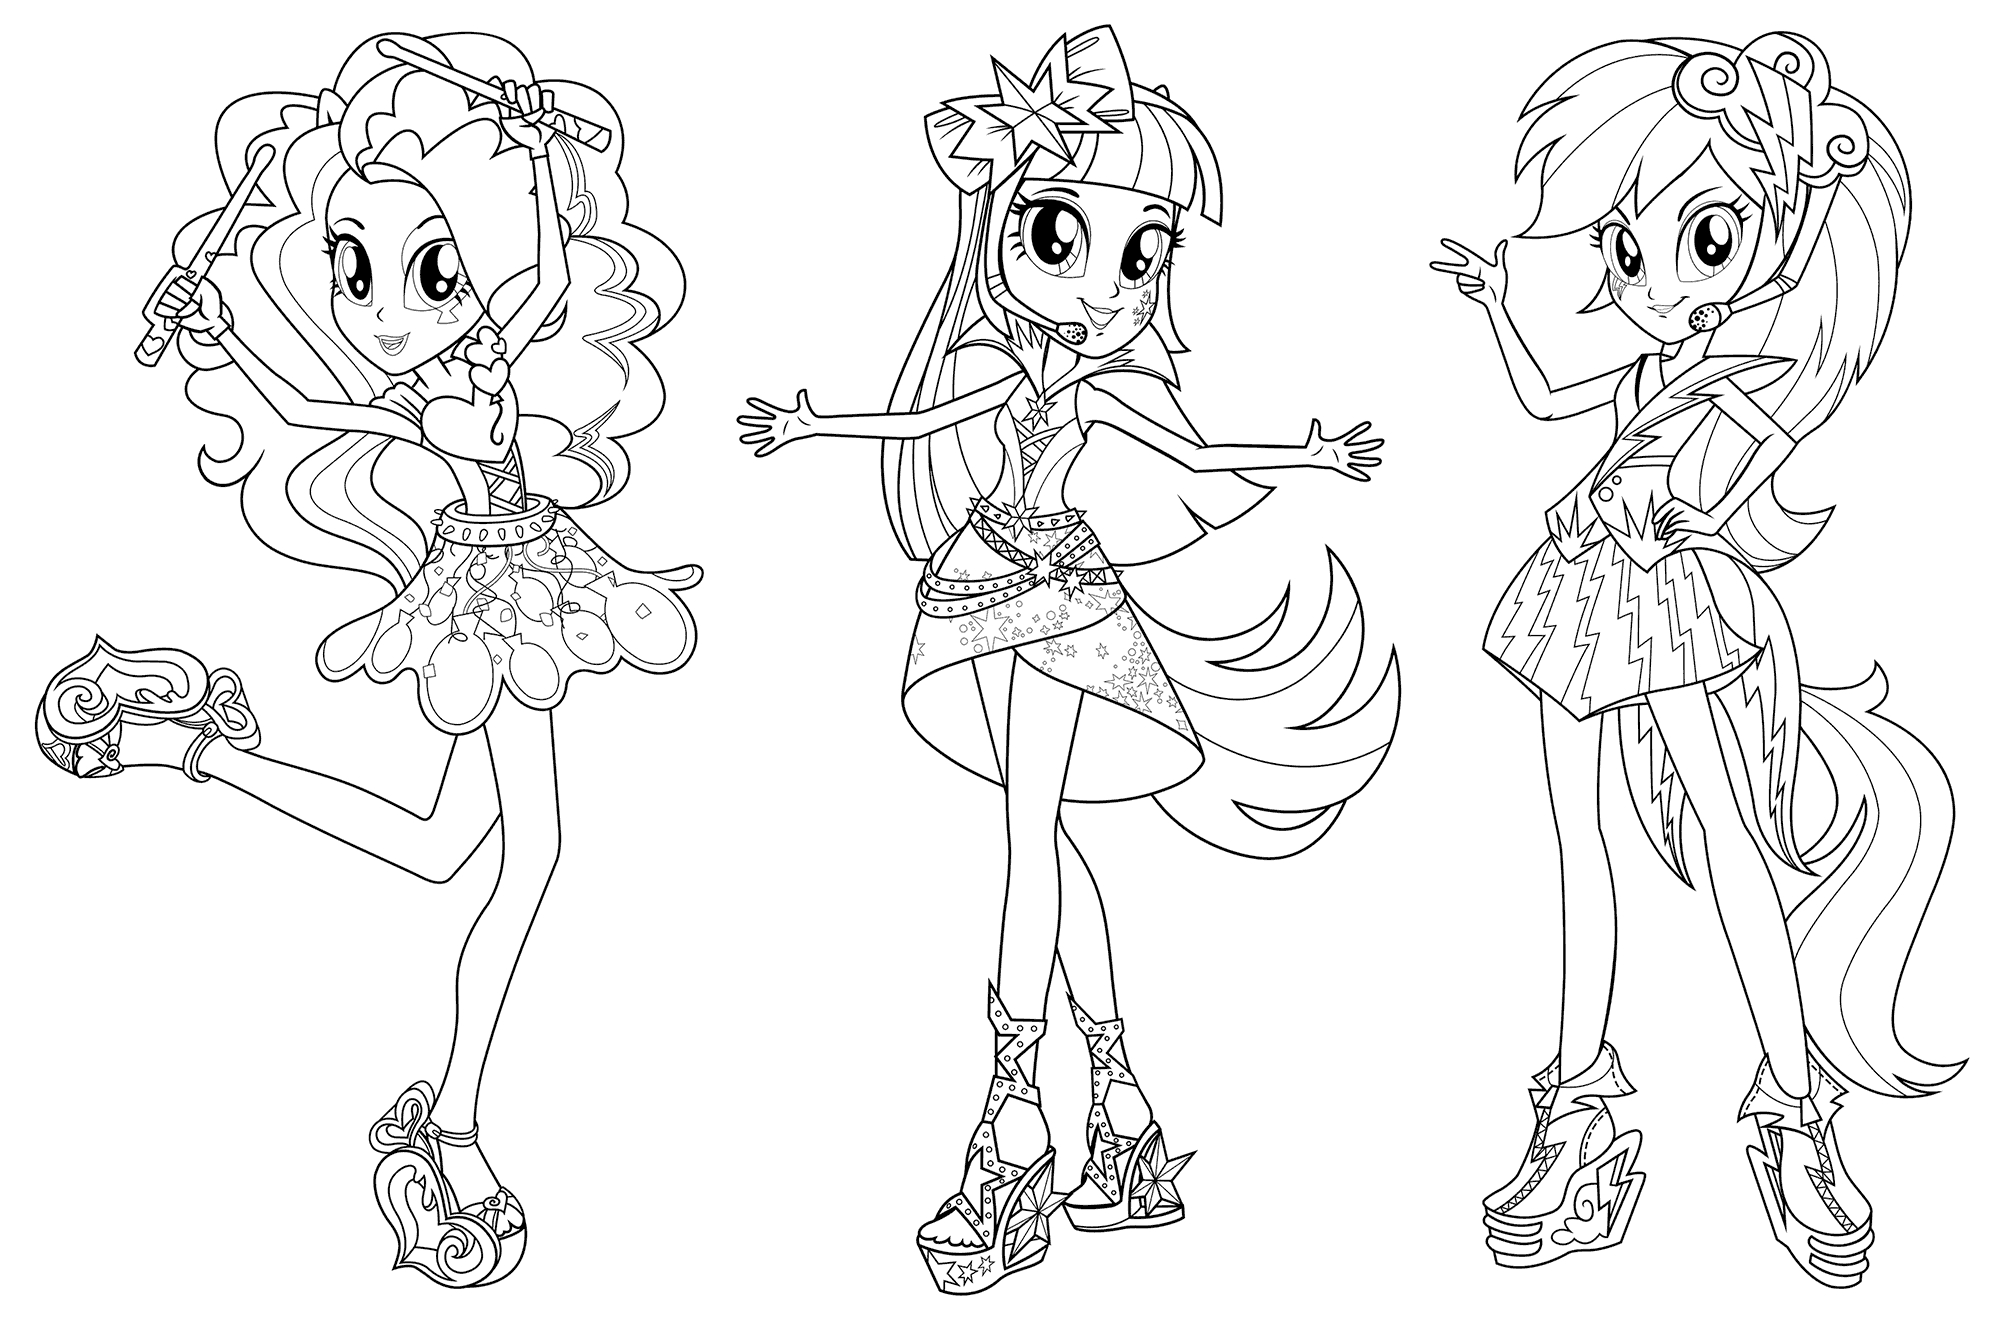 2000x1320 My Little Pony Equestria Girls Coloring Pages To Print Coloring